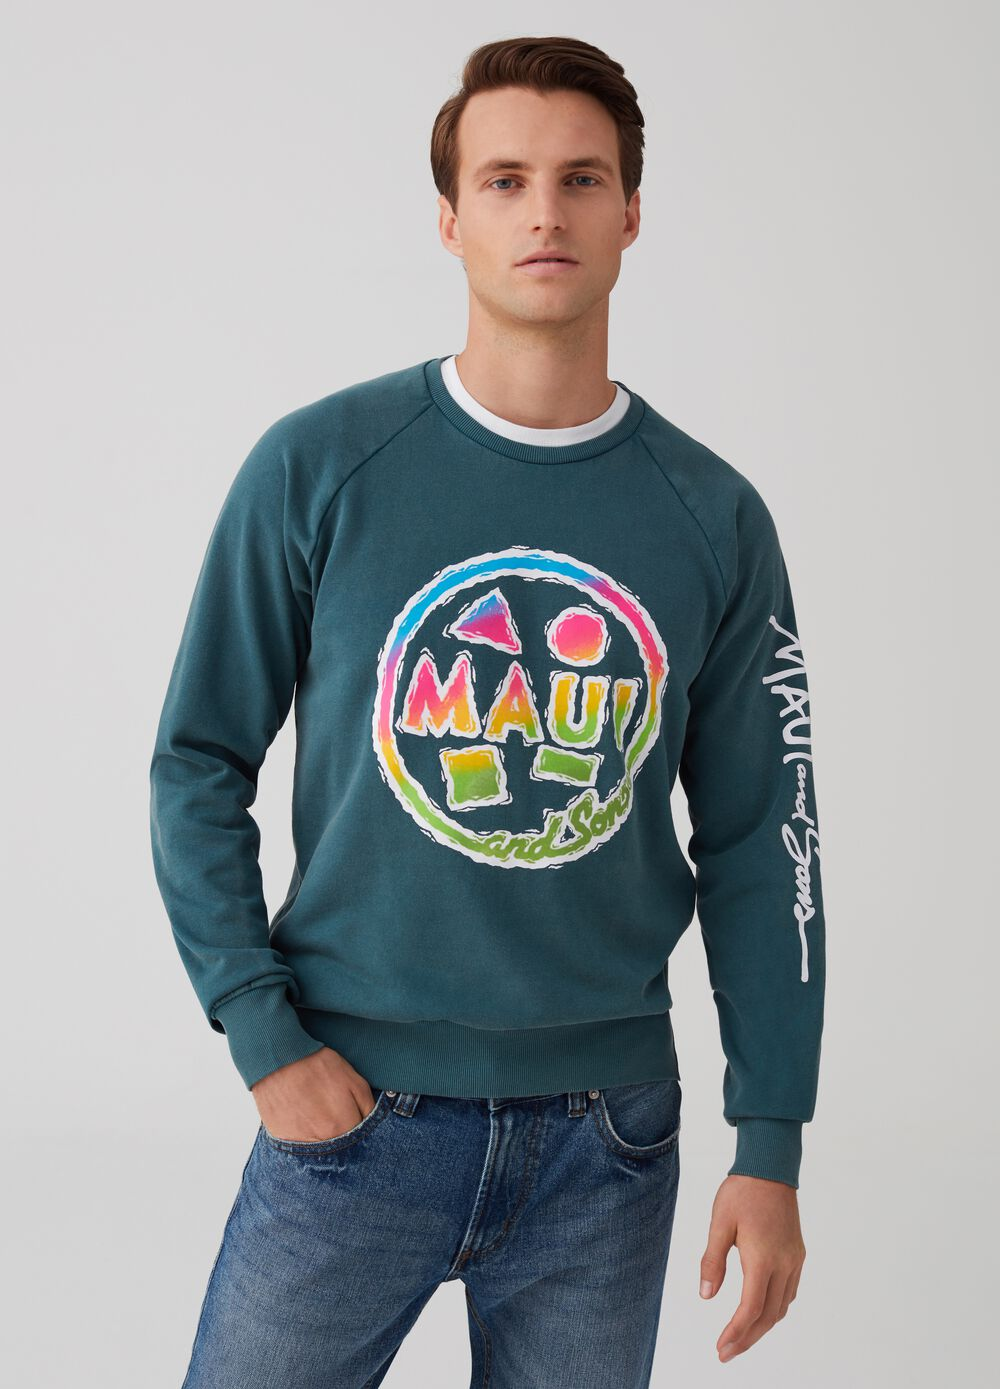 Round neck sweatshirt by Maui and Sons